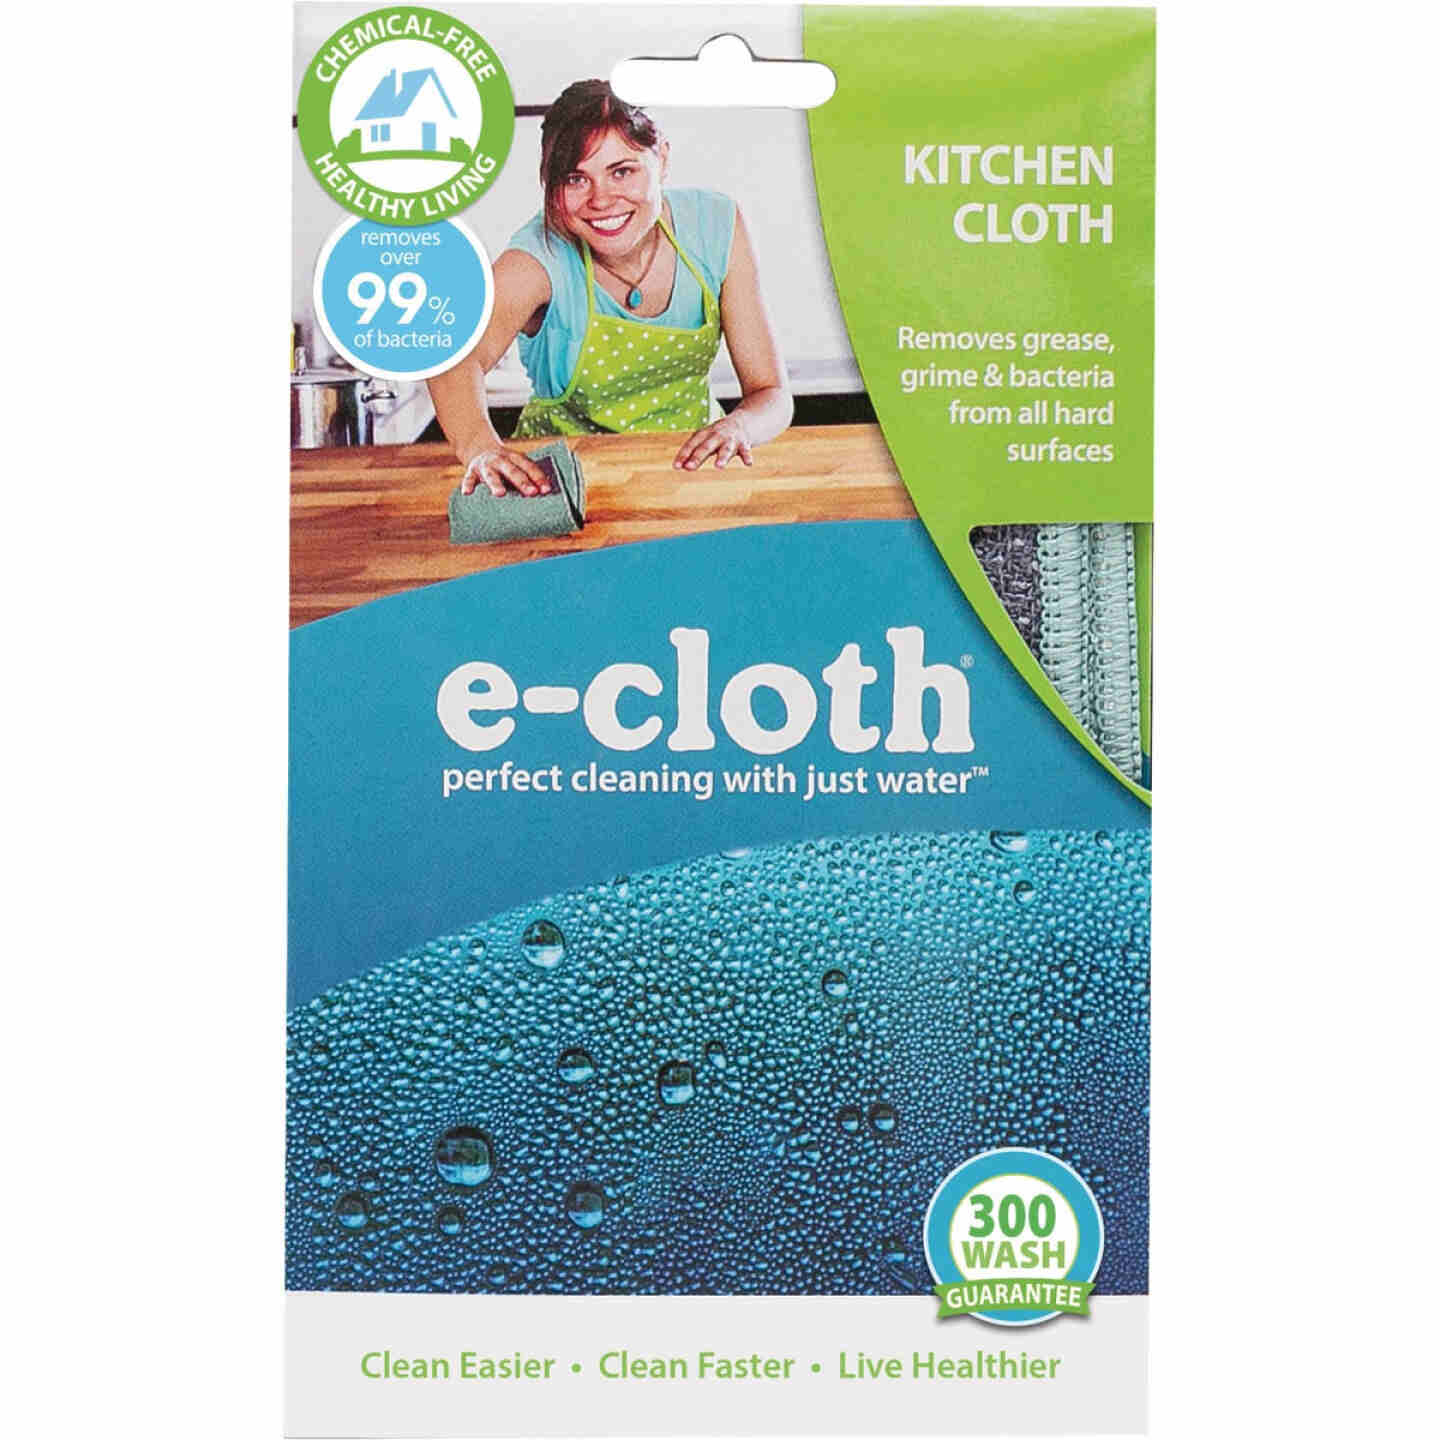 E-Cloth 12.5 In. x 12.5 In. Kitchen Cleaning Cloth Image 2